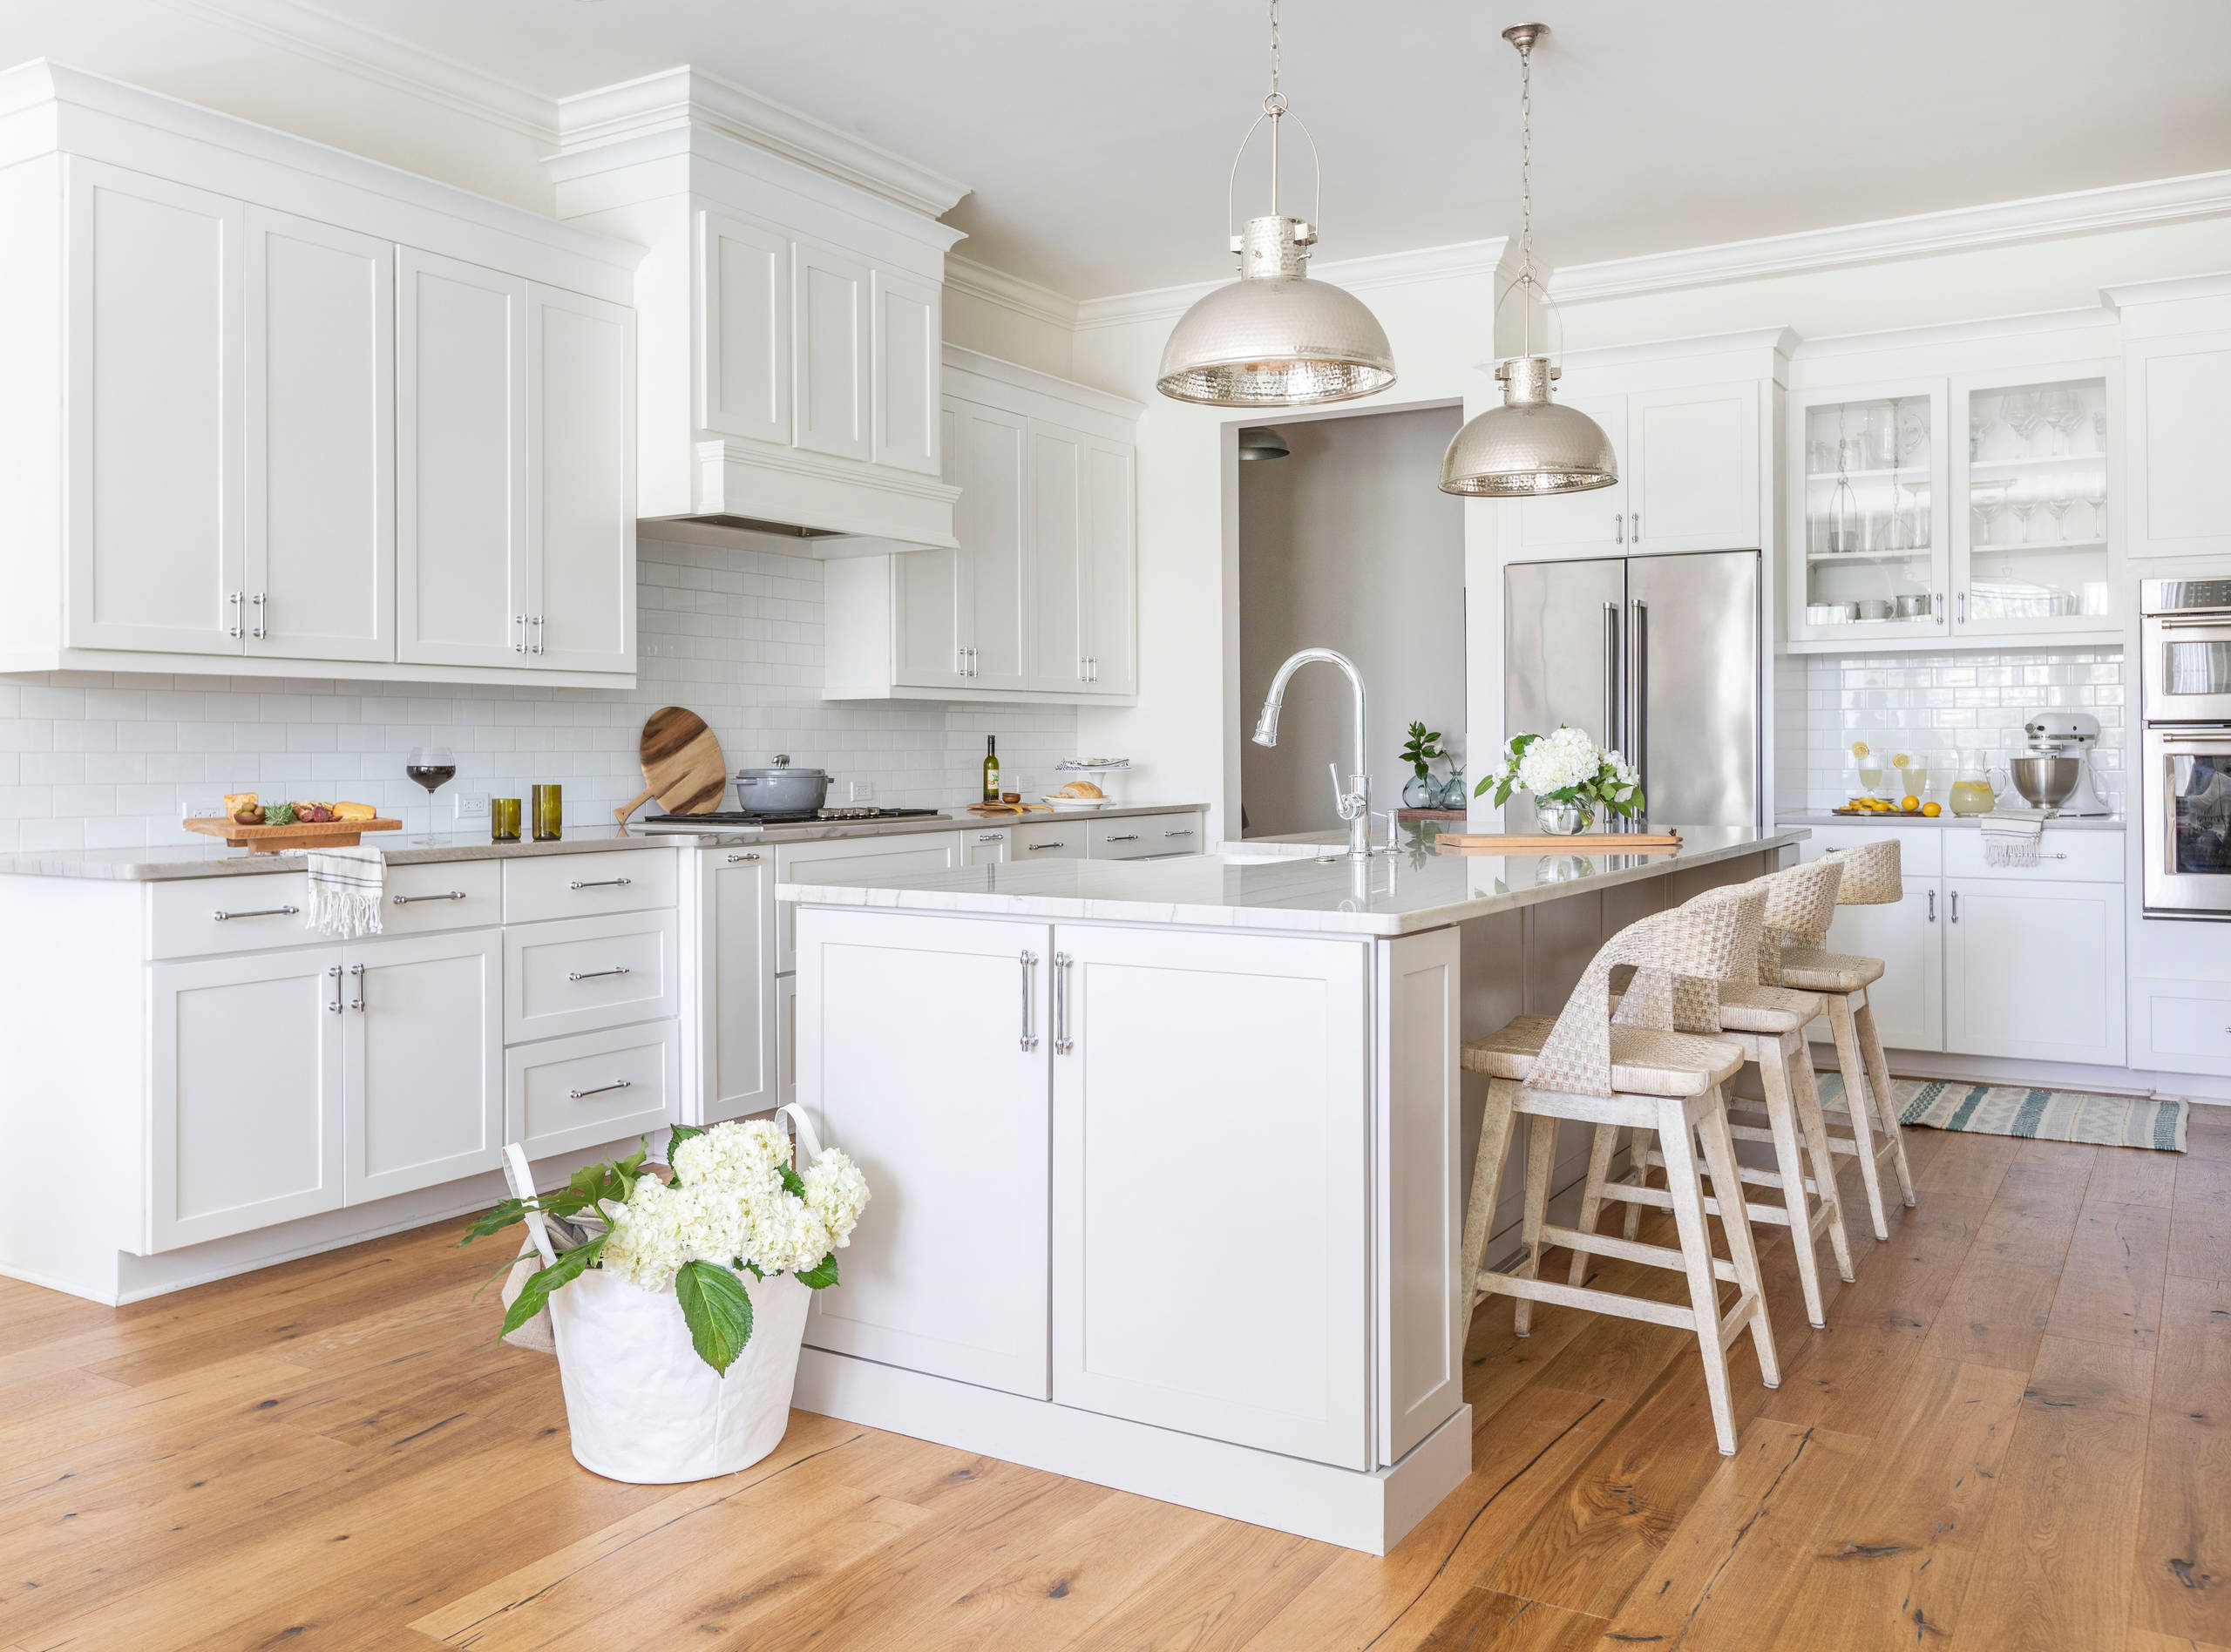 Image of: 75 Beautiful Kitchen With Subway Tile Backsplash Pictures Ideas November 2020 Houzz